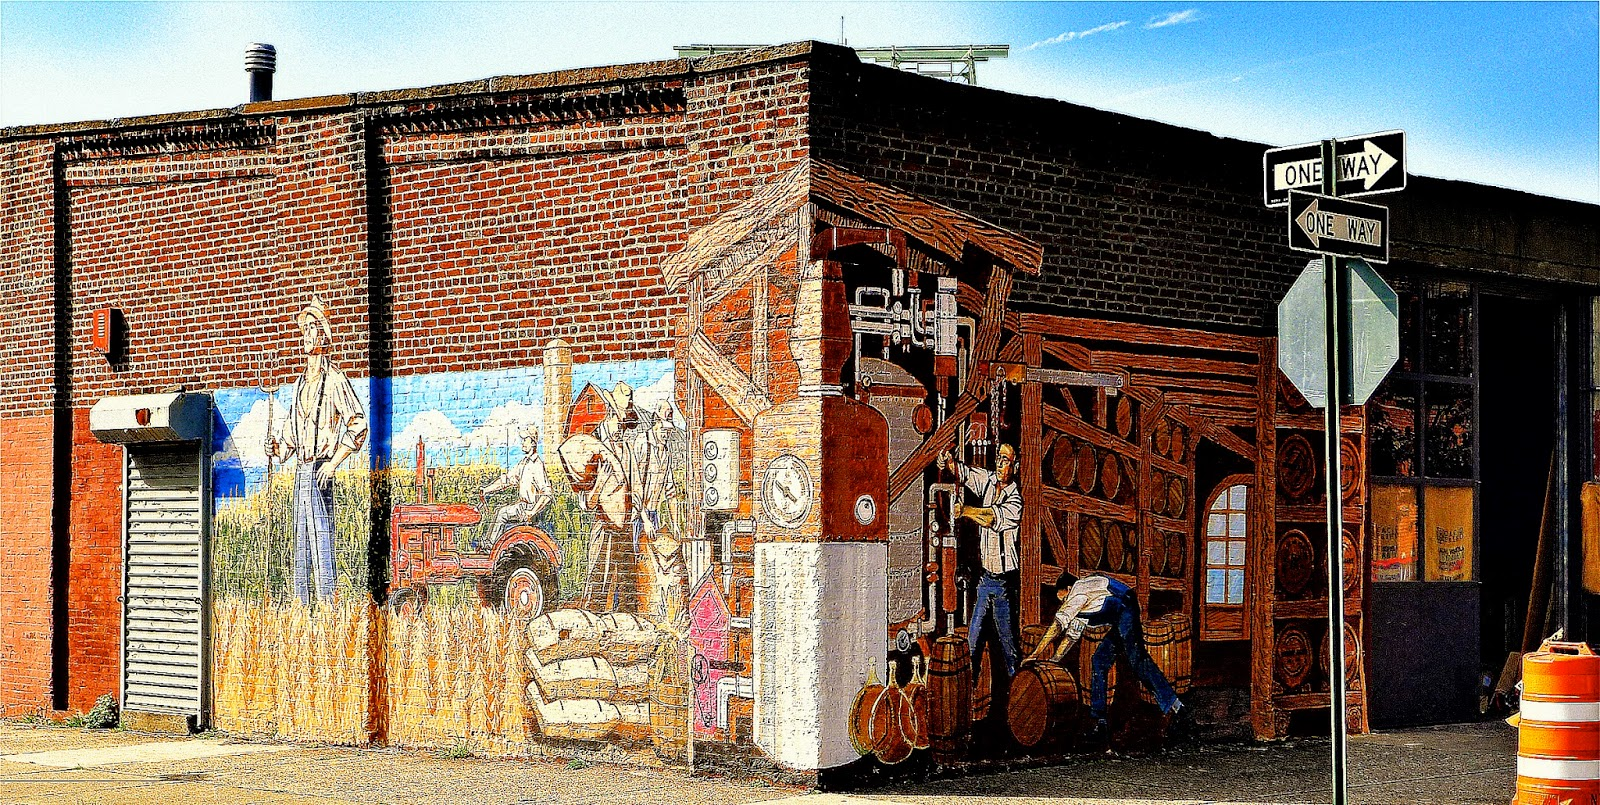 Architectural tiles glass and ornamentation in new york wall cacao prietos warehouse is on the corner of conover and coffey streets and contains an exterior wrap around mural painted on the brick walls amipublicfo Choice Image